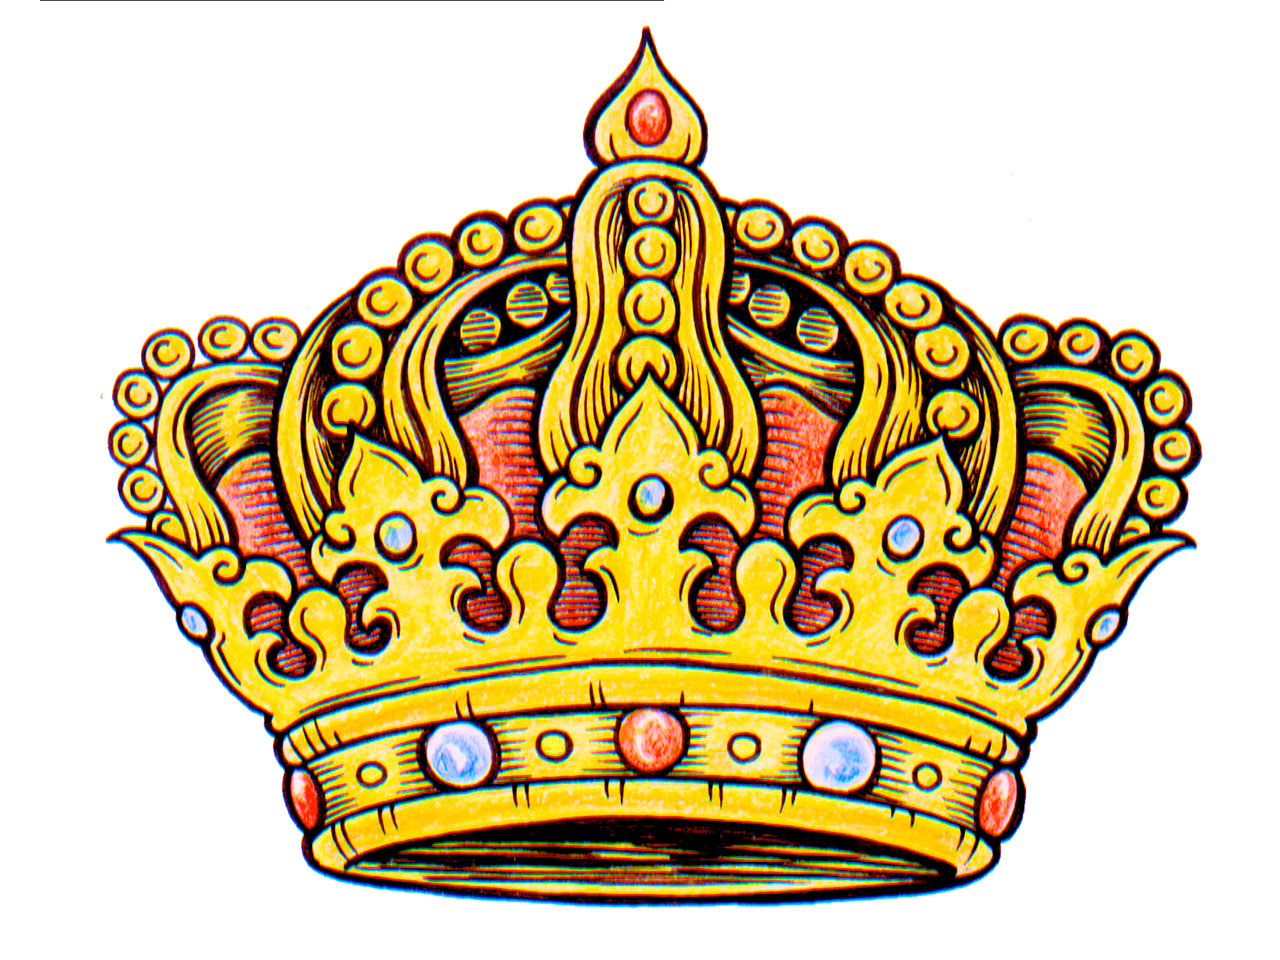 Clipart king crown image royalty free library King crown clip art - ClipartFest image royalty free library